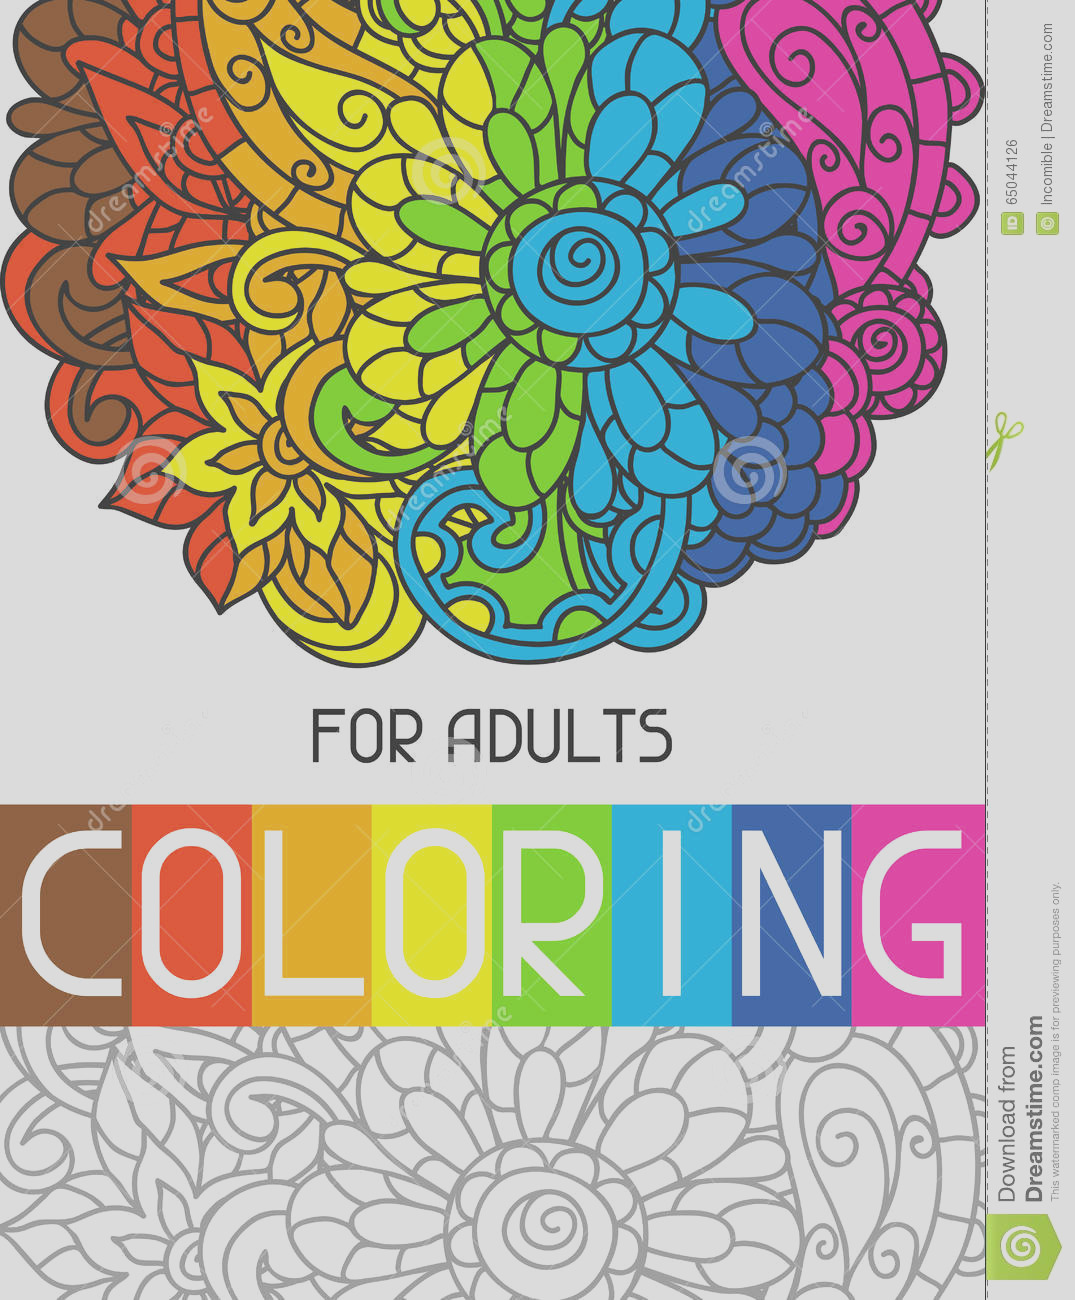 stock illustration adult coloring book design cover illustration trend item to relieve stress creativity image